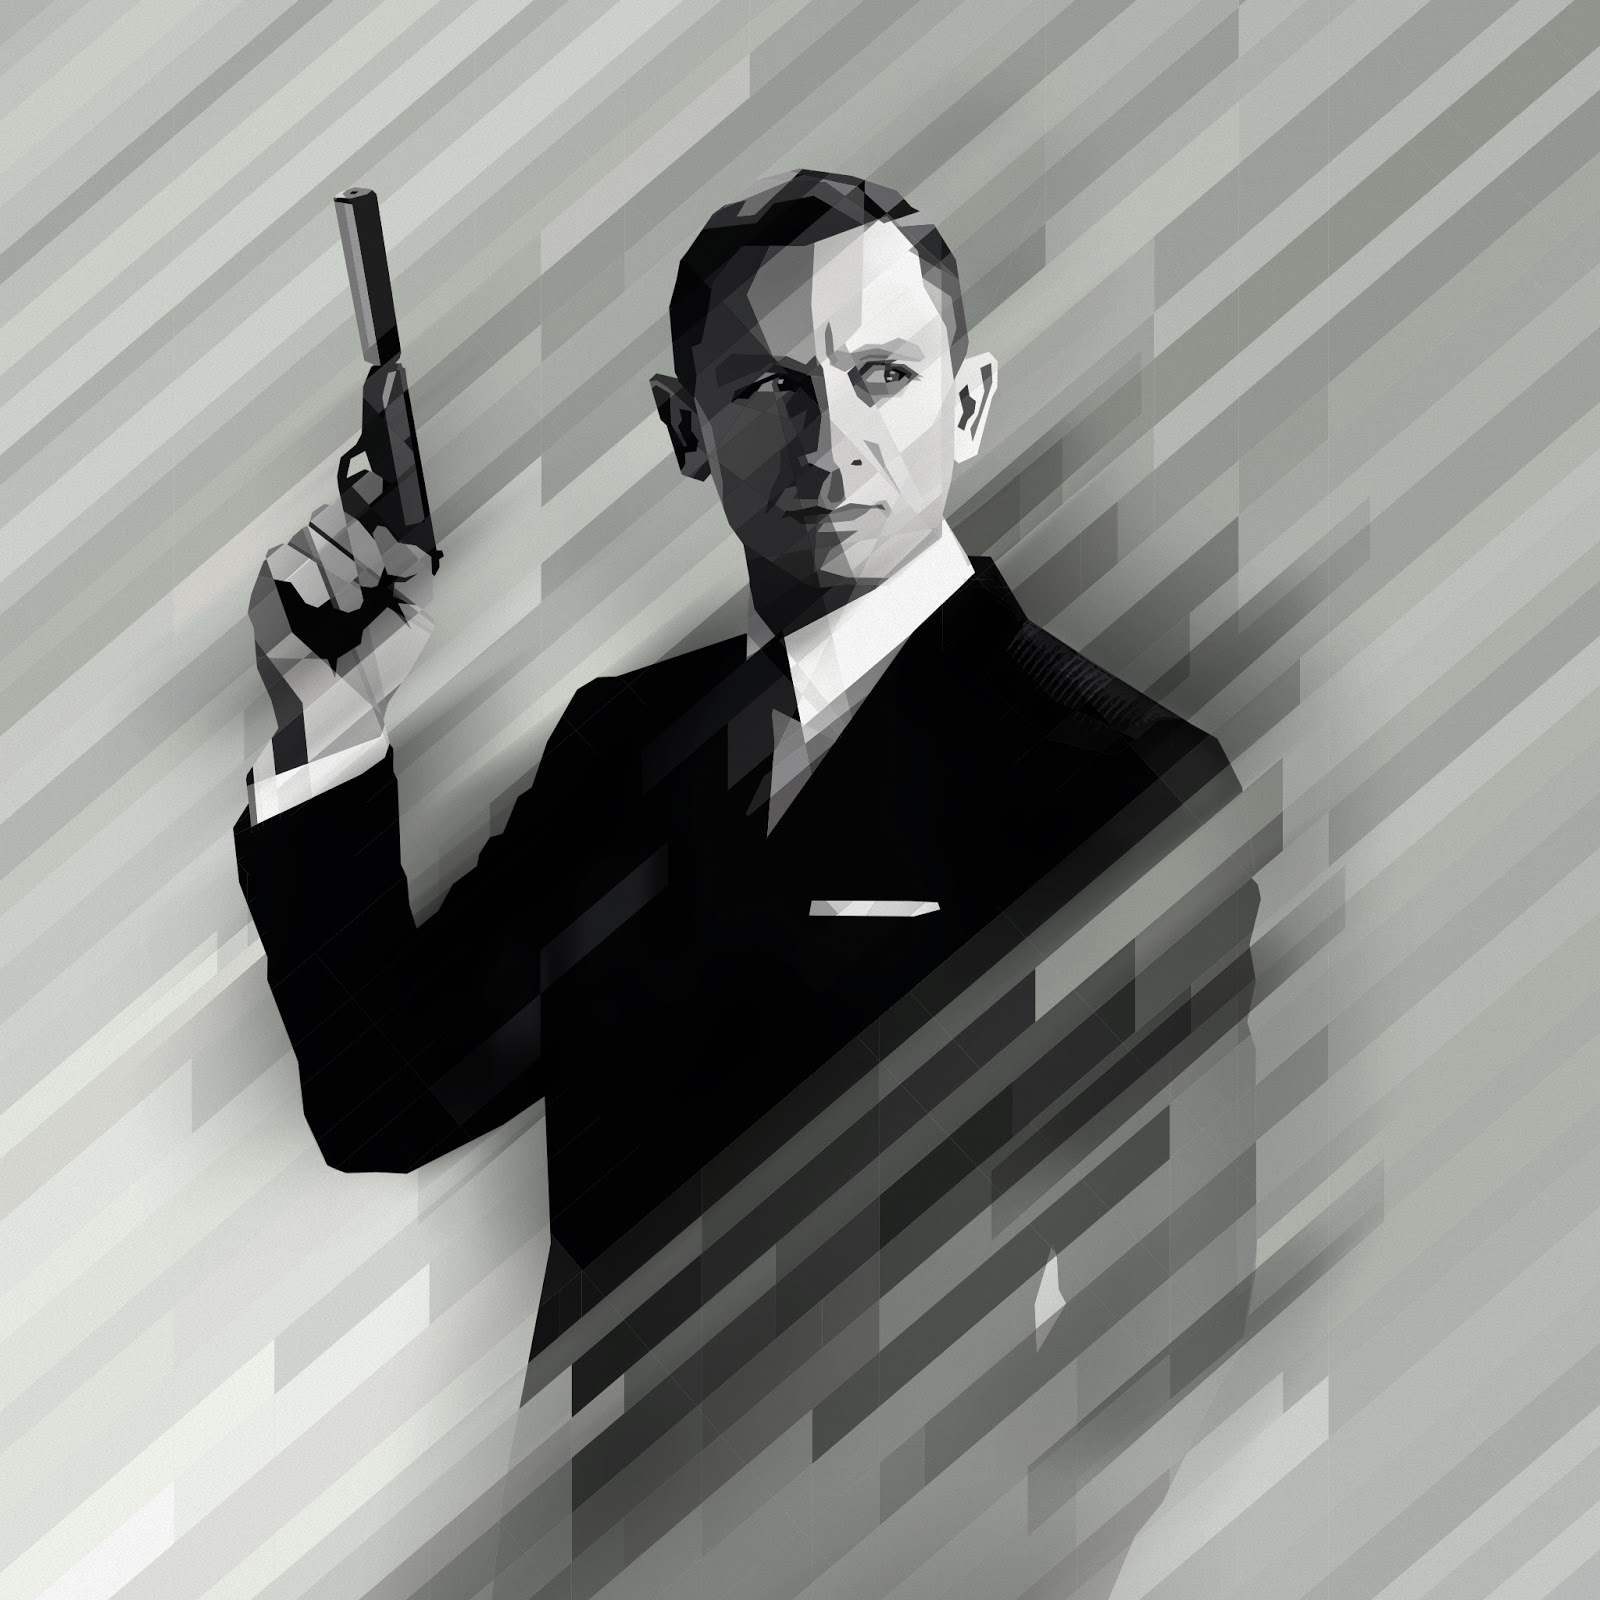 bond skyfall 007 ipad retina wallpapers | free ipad retina hd wallpapers